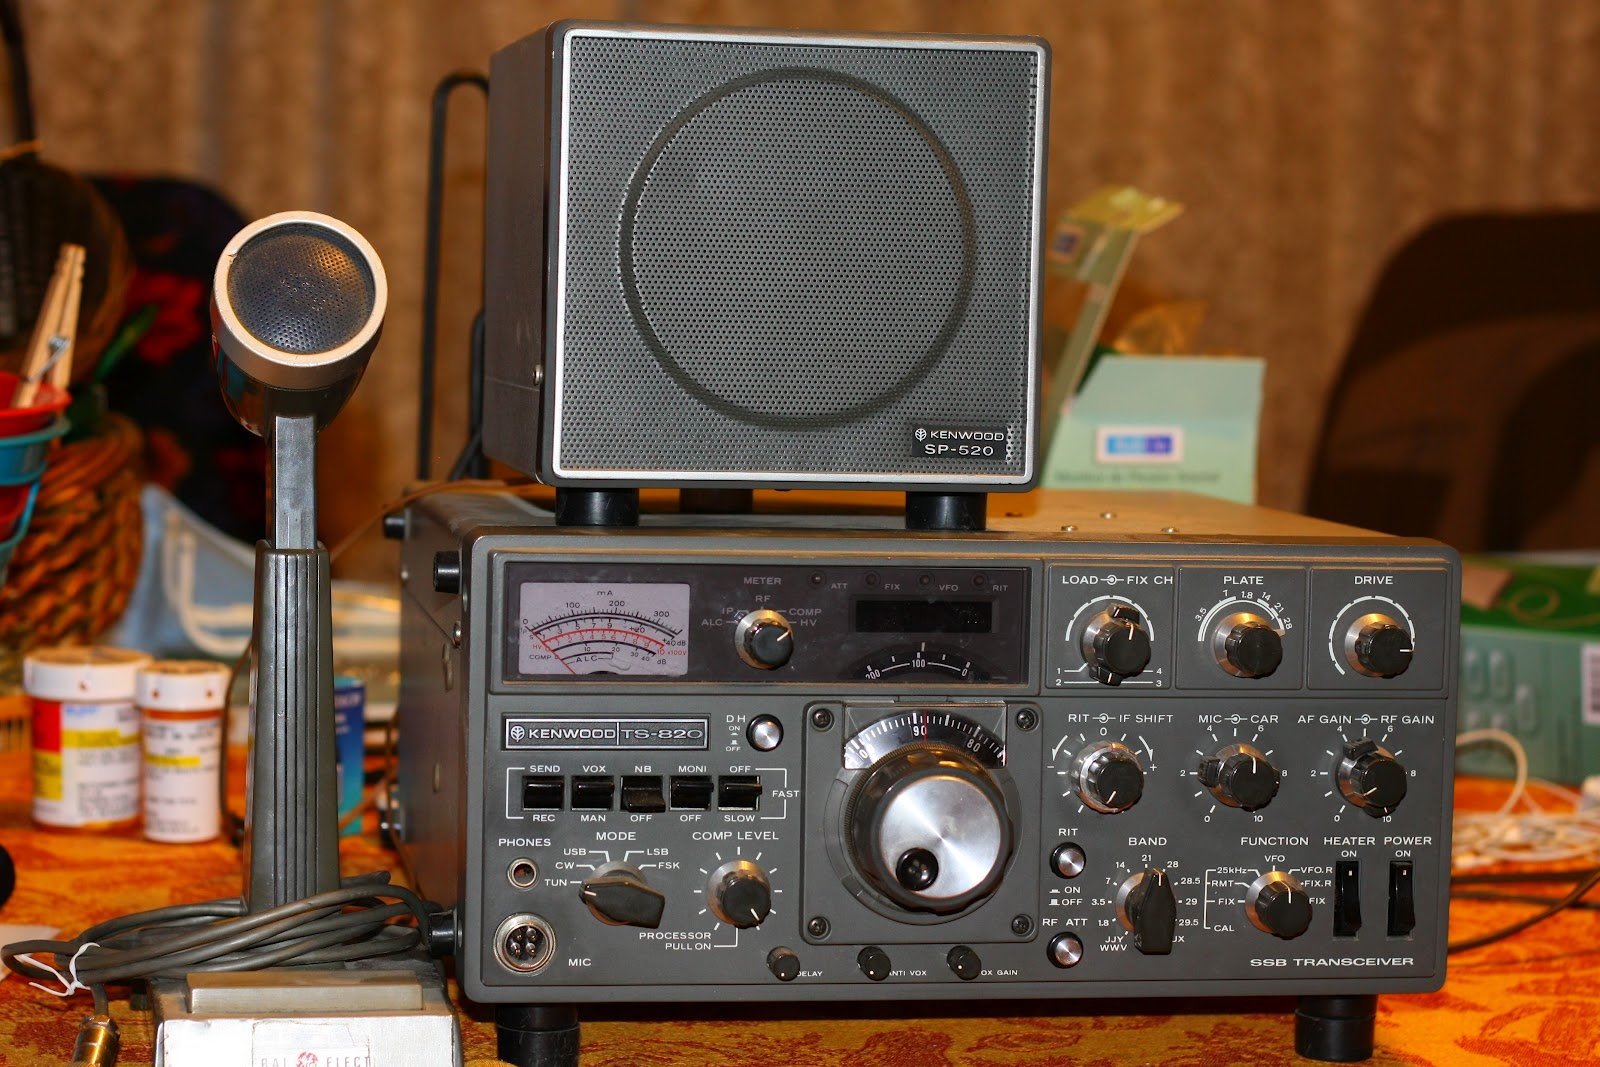 Adventures in Ham Radio!: Memorial Day, Bike Rides, and